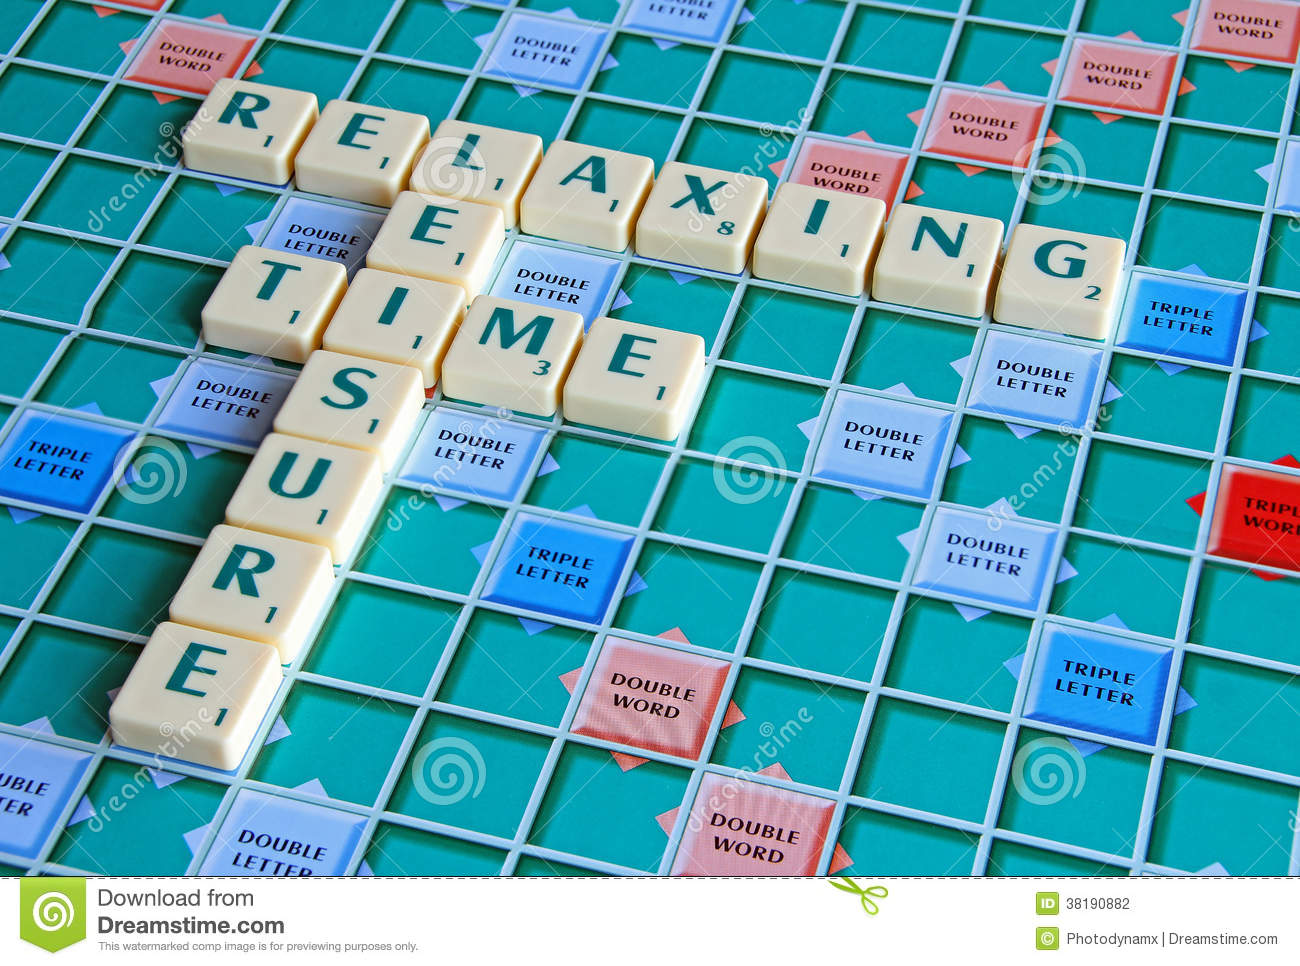 Photo of board game spelling out leisure time and gaming activities.